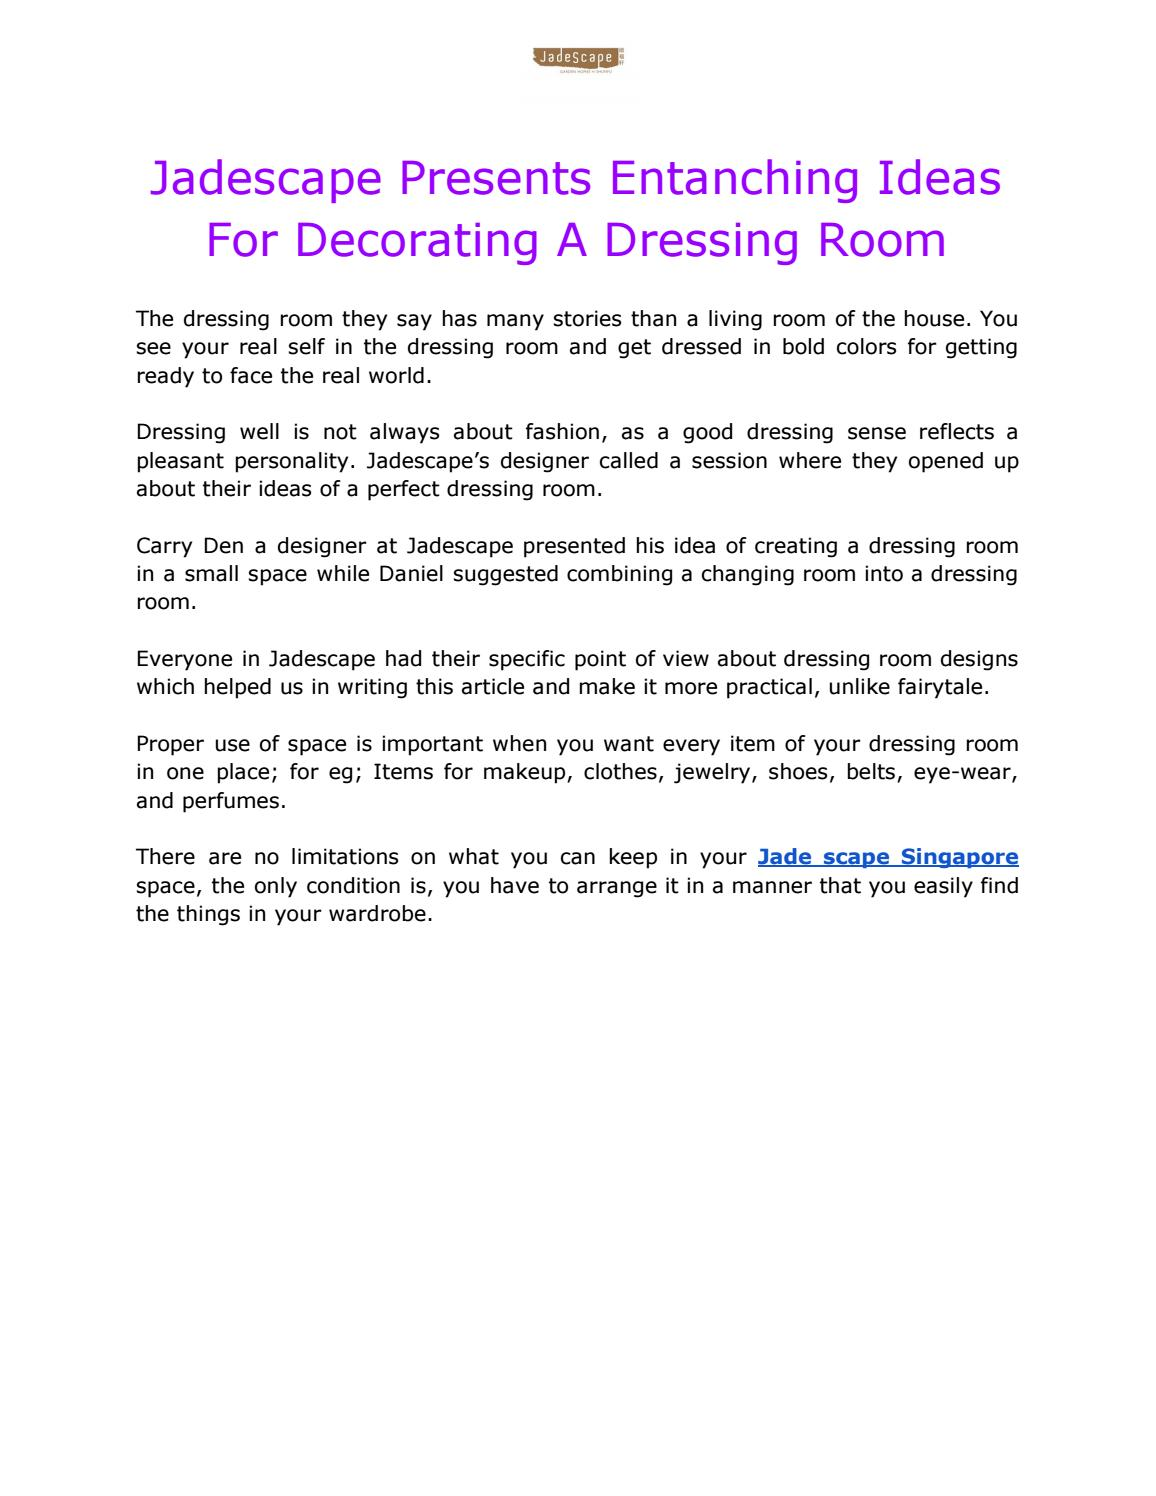 run shoes exclusive deals no sale tax Jadescape Presents Entanching Ideas For Decorating A ...